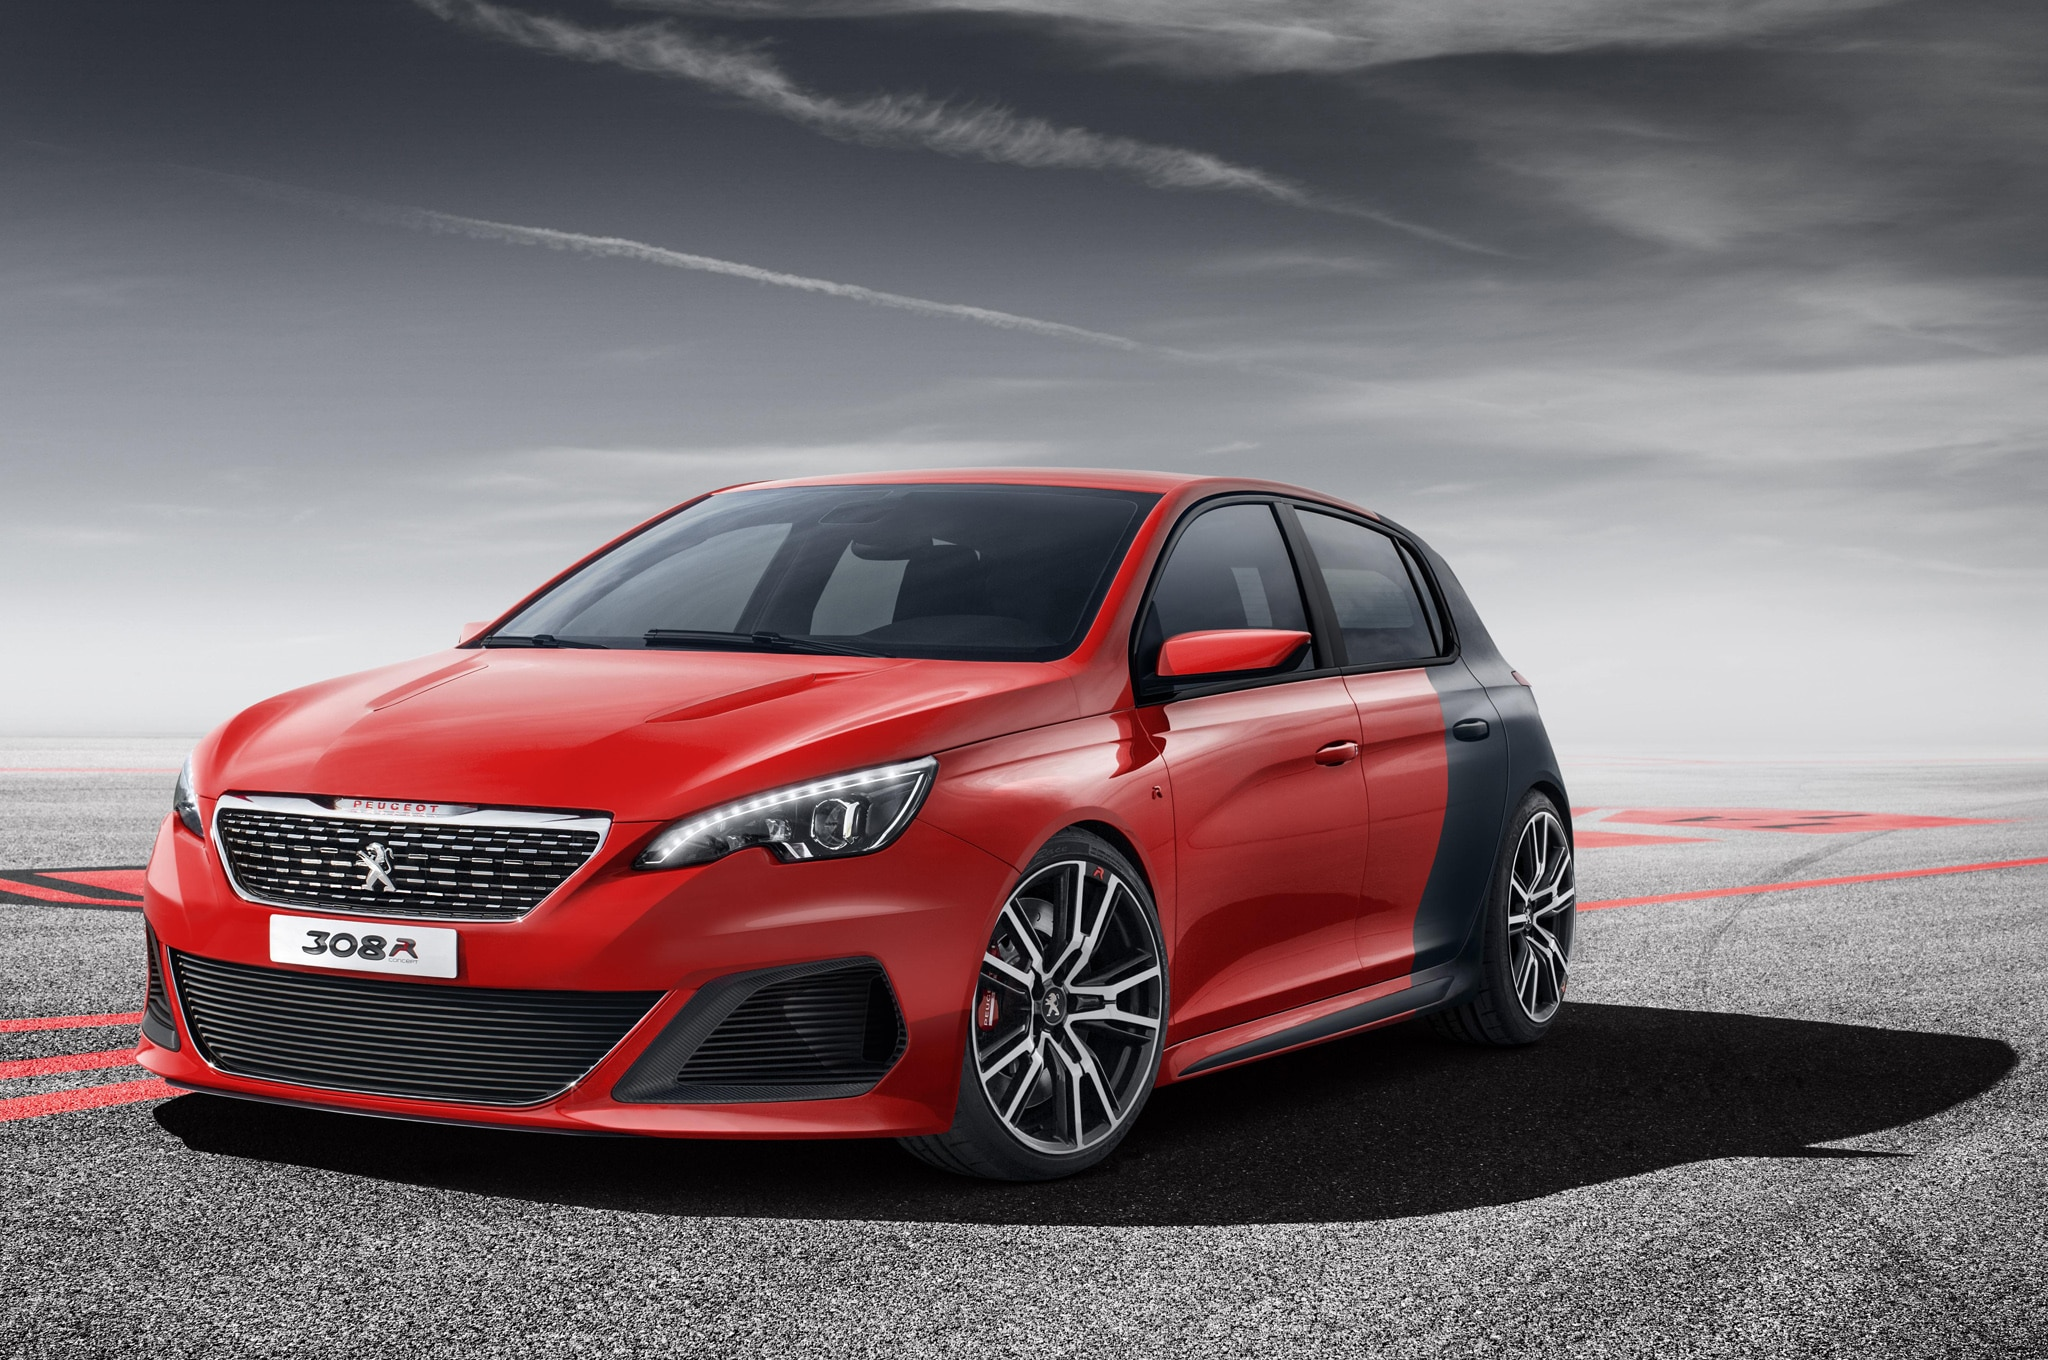 Peugeot 3085 Concept Front Three Quarter View1